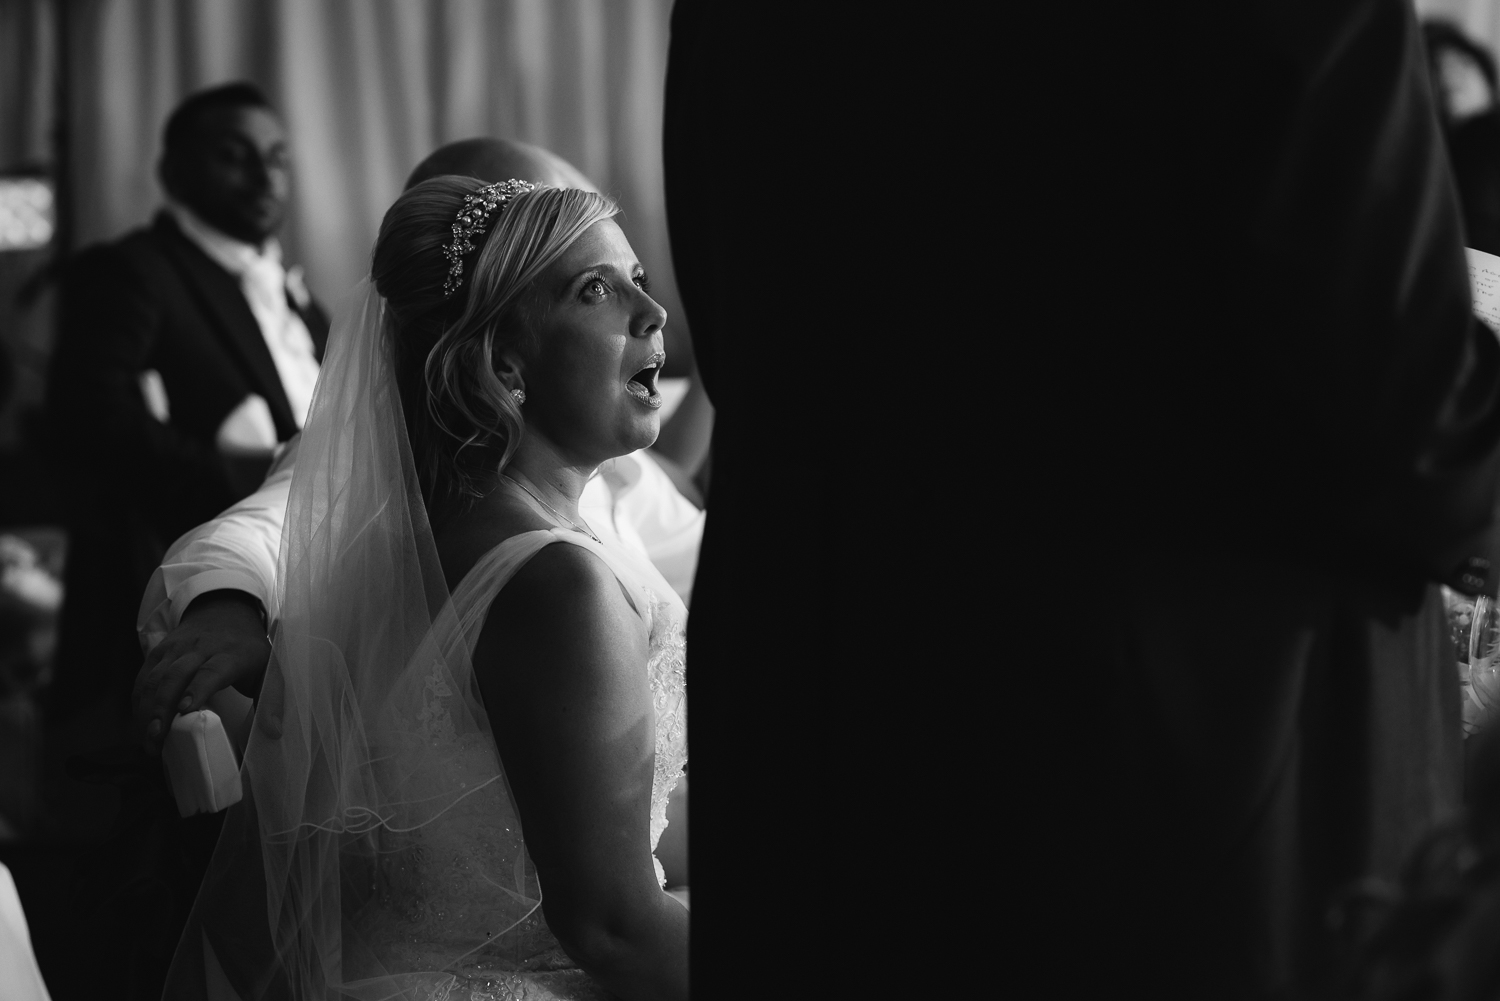 Copy of Bride during the wedding speeches.